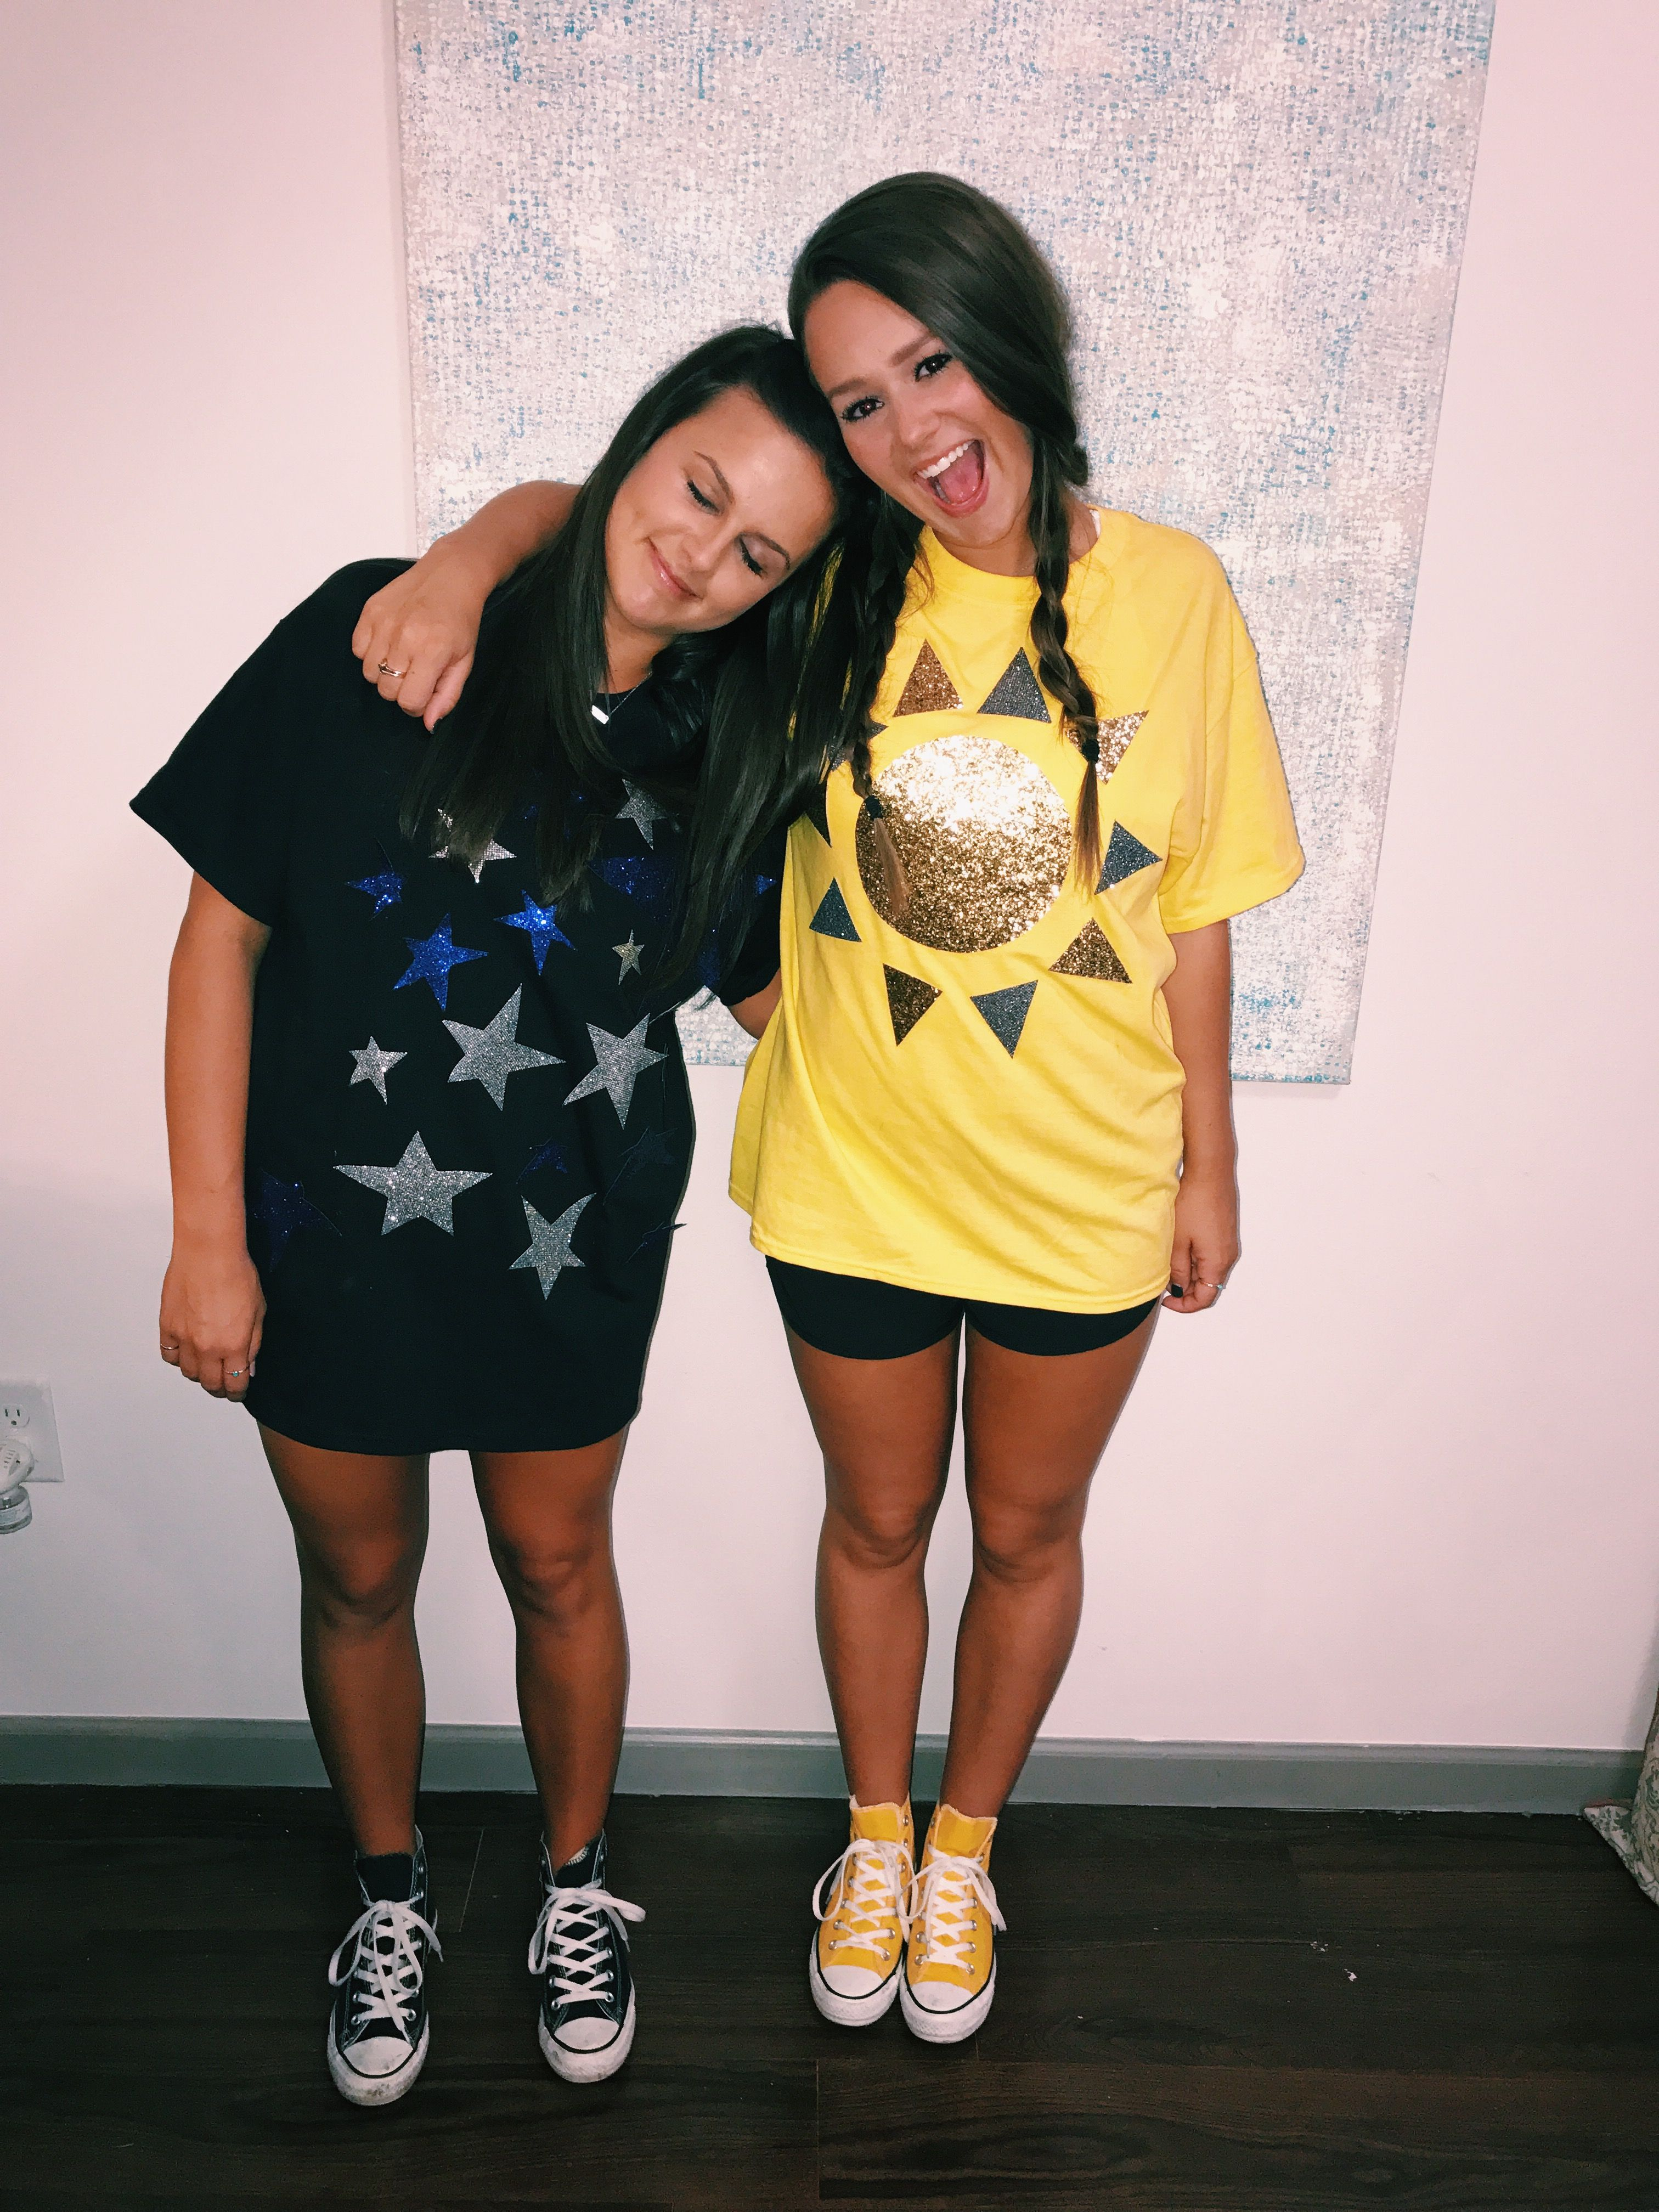 Opposites Attract Costume Day And Night Halloween